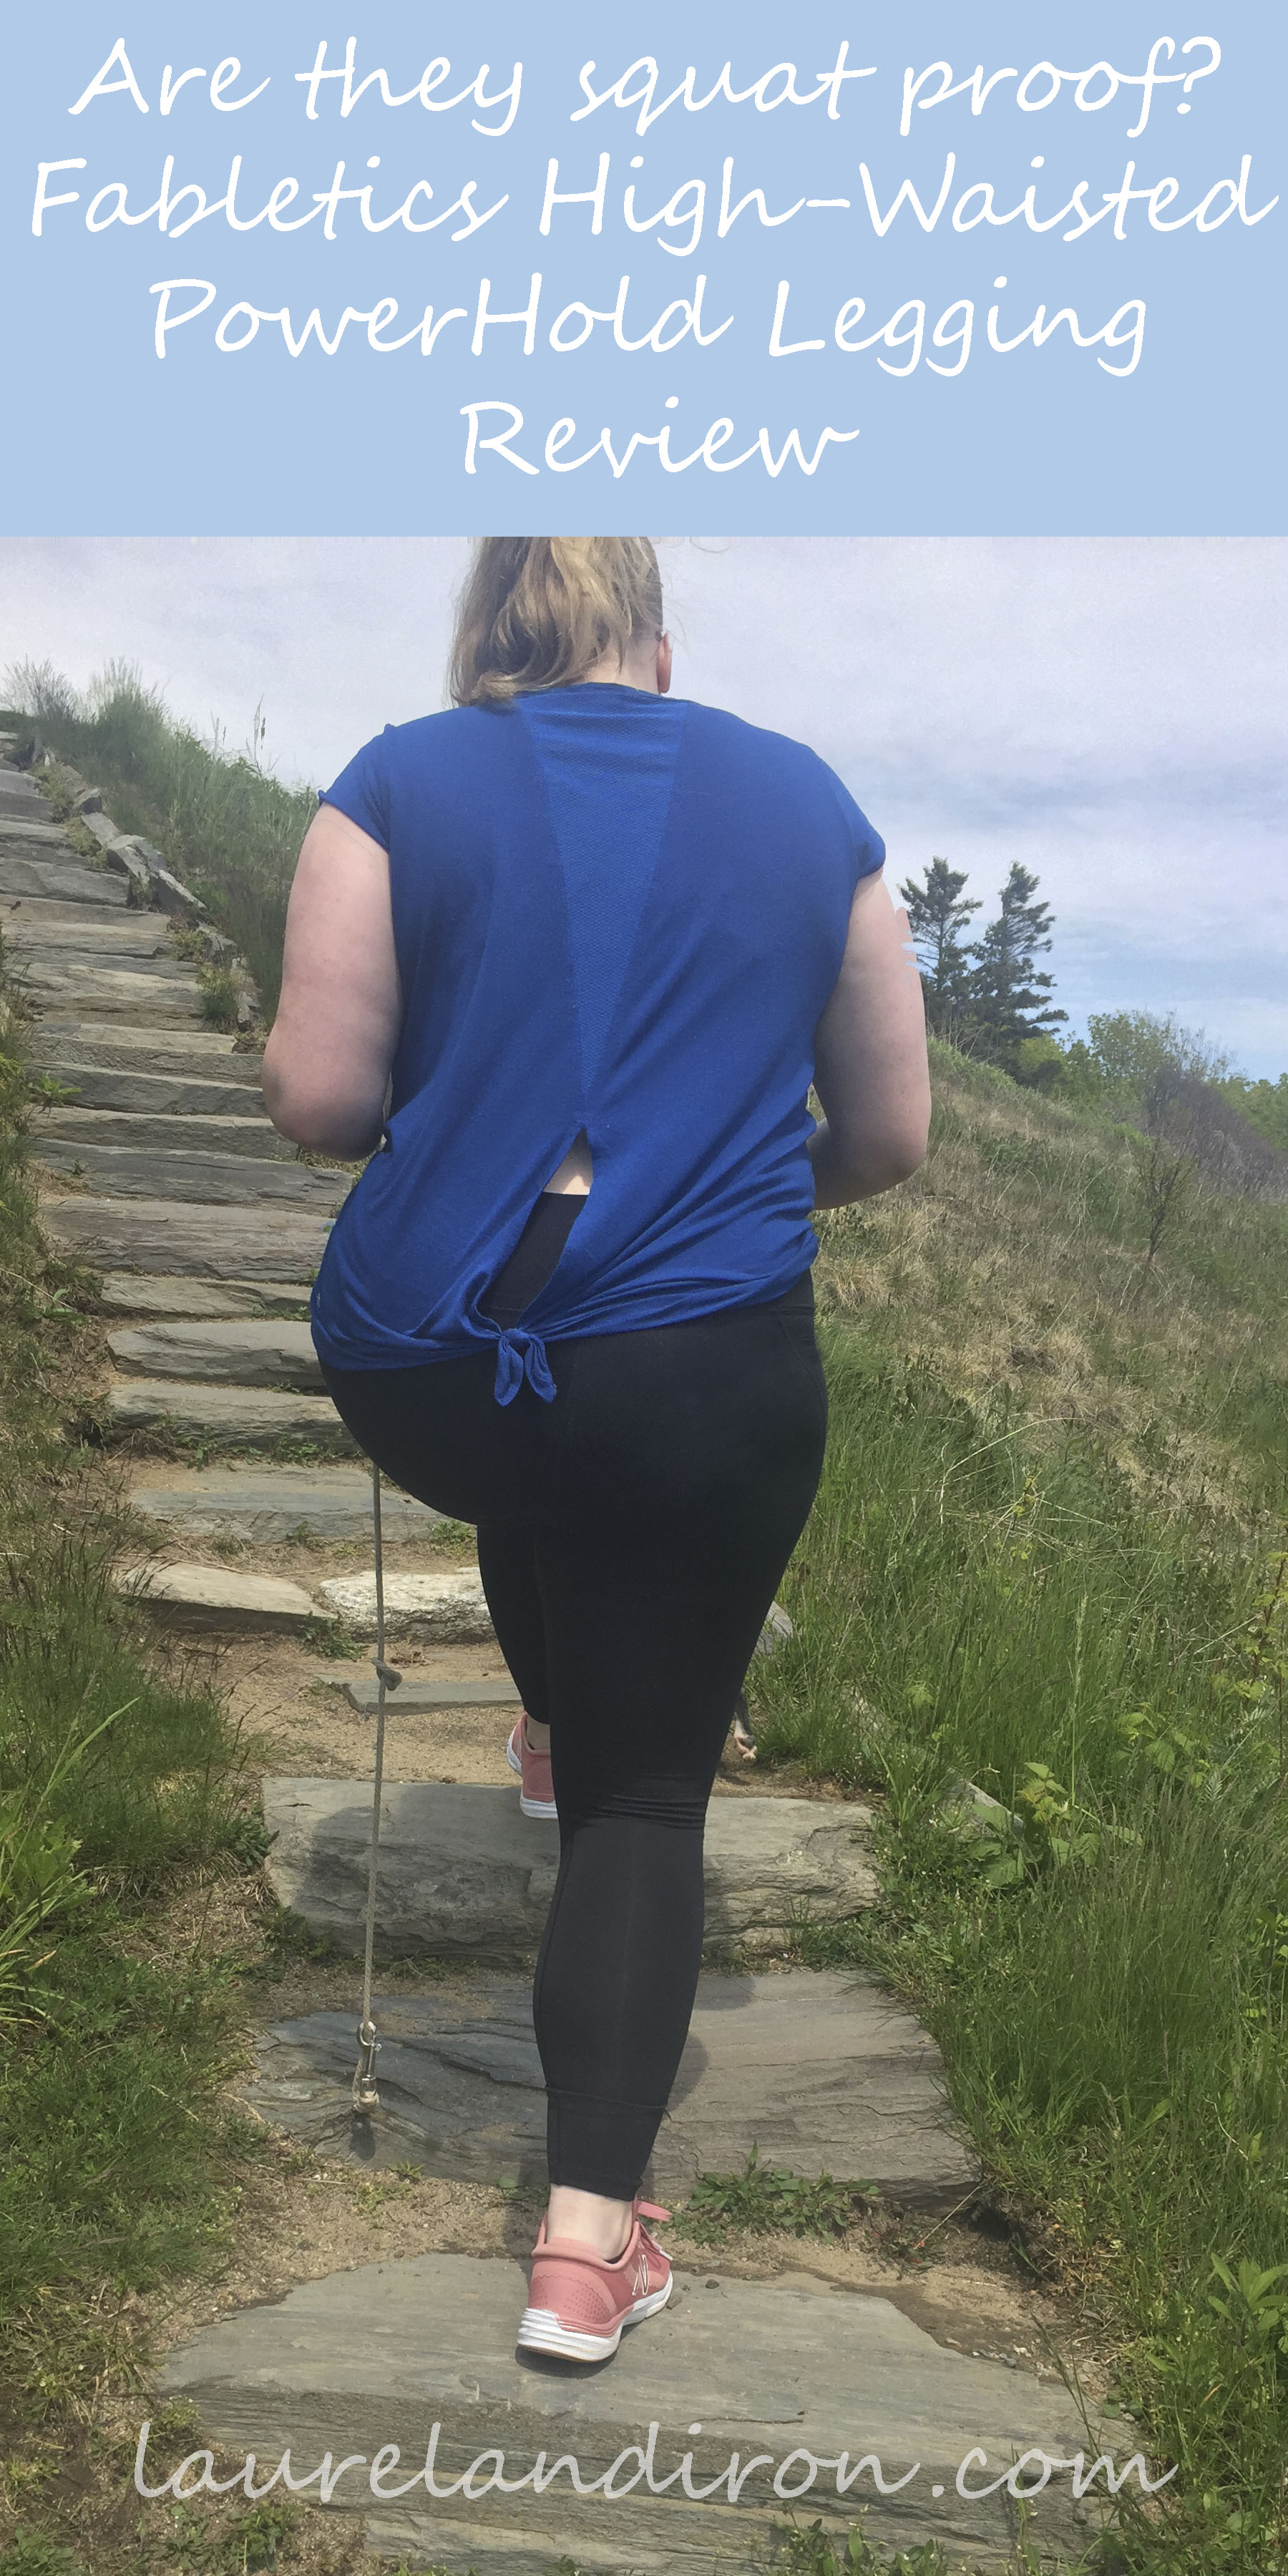 Squat Proof Leggings Part 4:  Fabletics High-Waisted PowerHold Leggings Review | Laurel and Iron